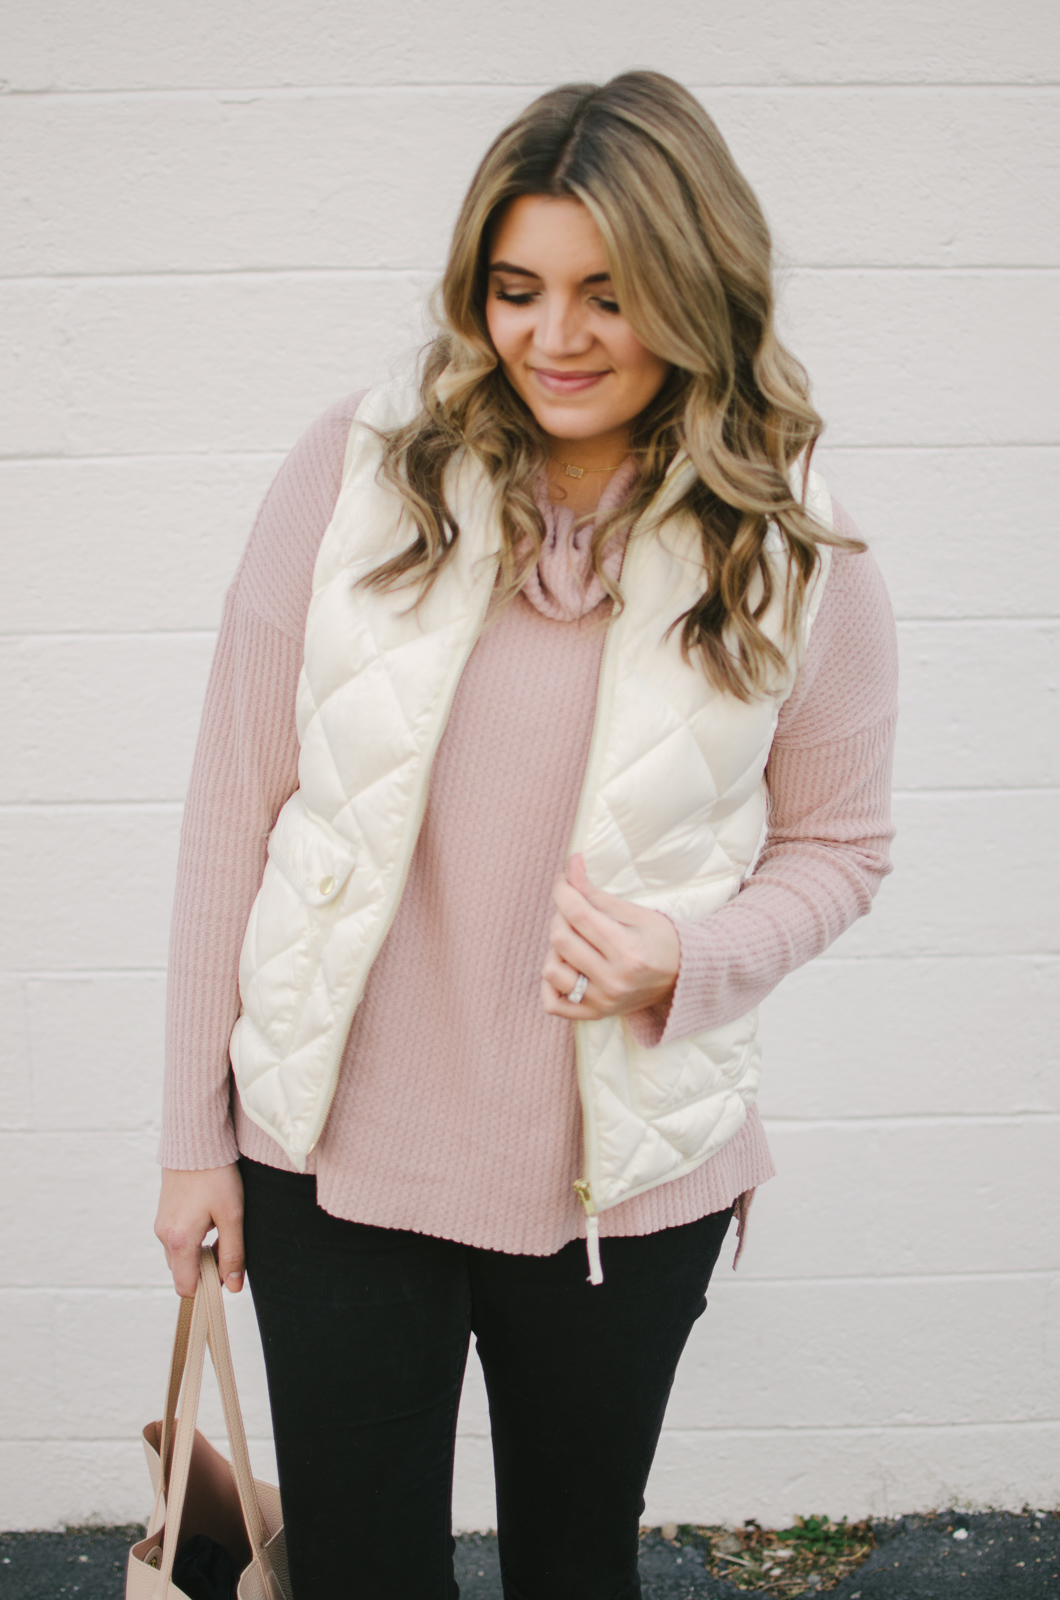 white puffer vest outfit - how wear puffer vest | shop this look or see more winter outfits at bylaurenm.com!